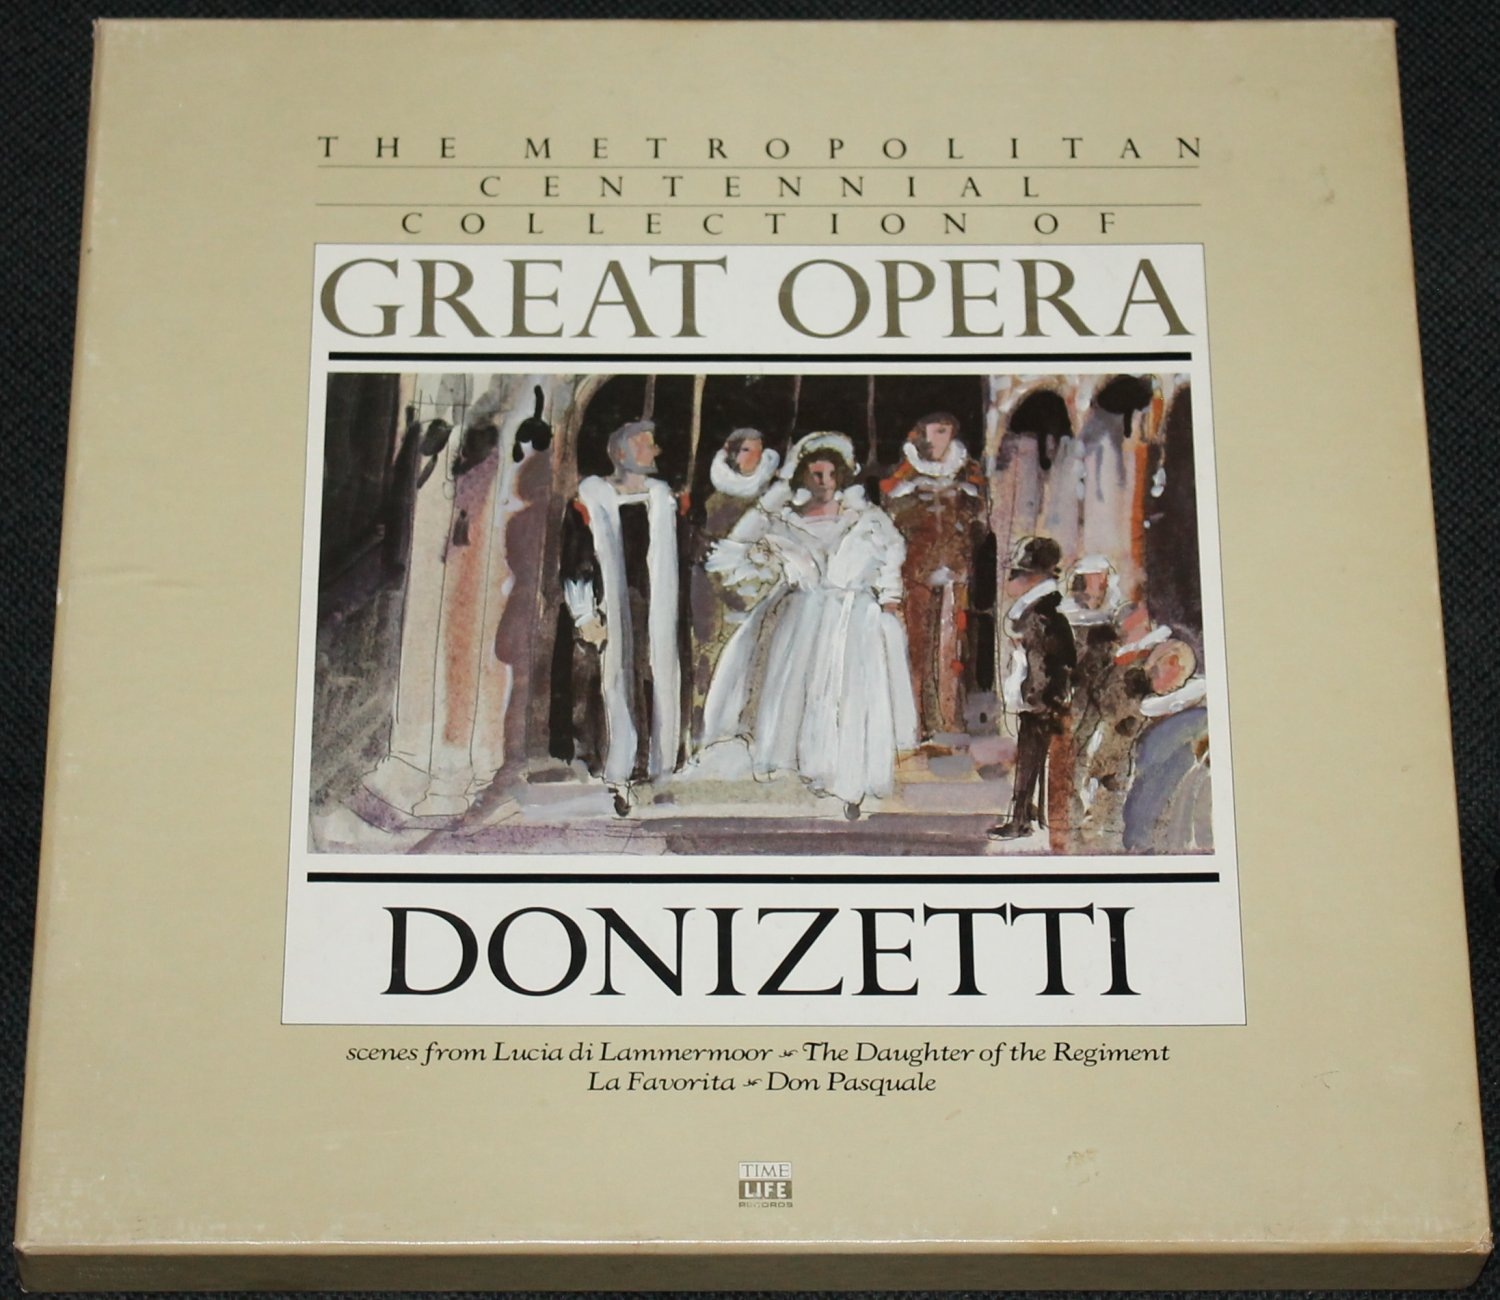 Great Opera Donizetti Record Set